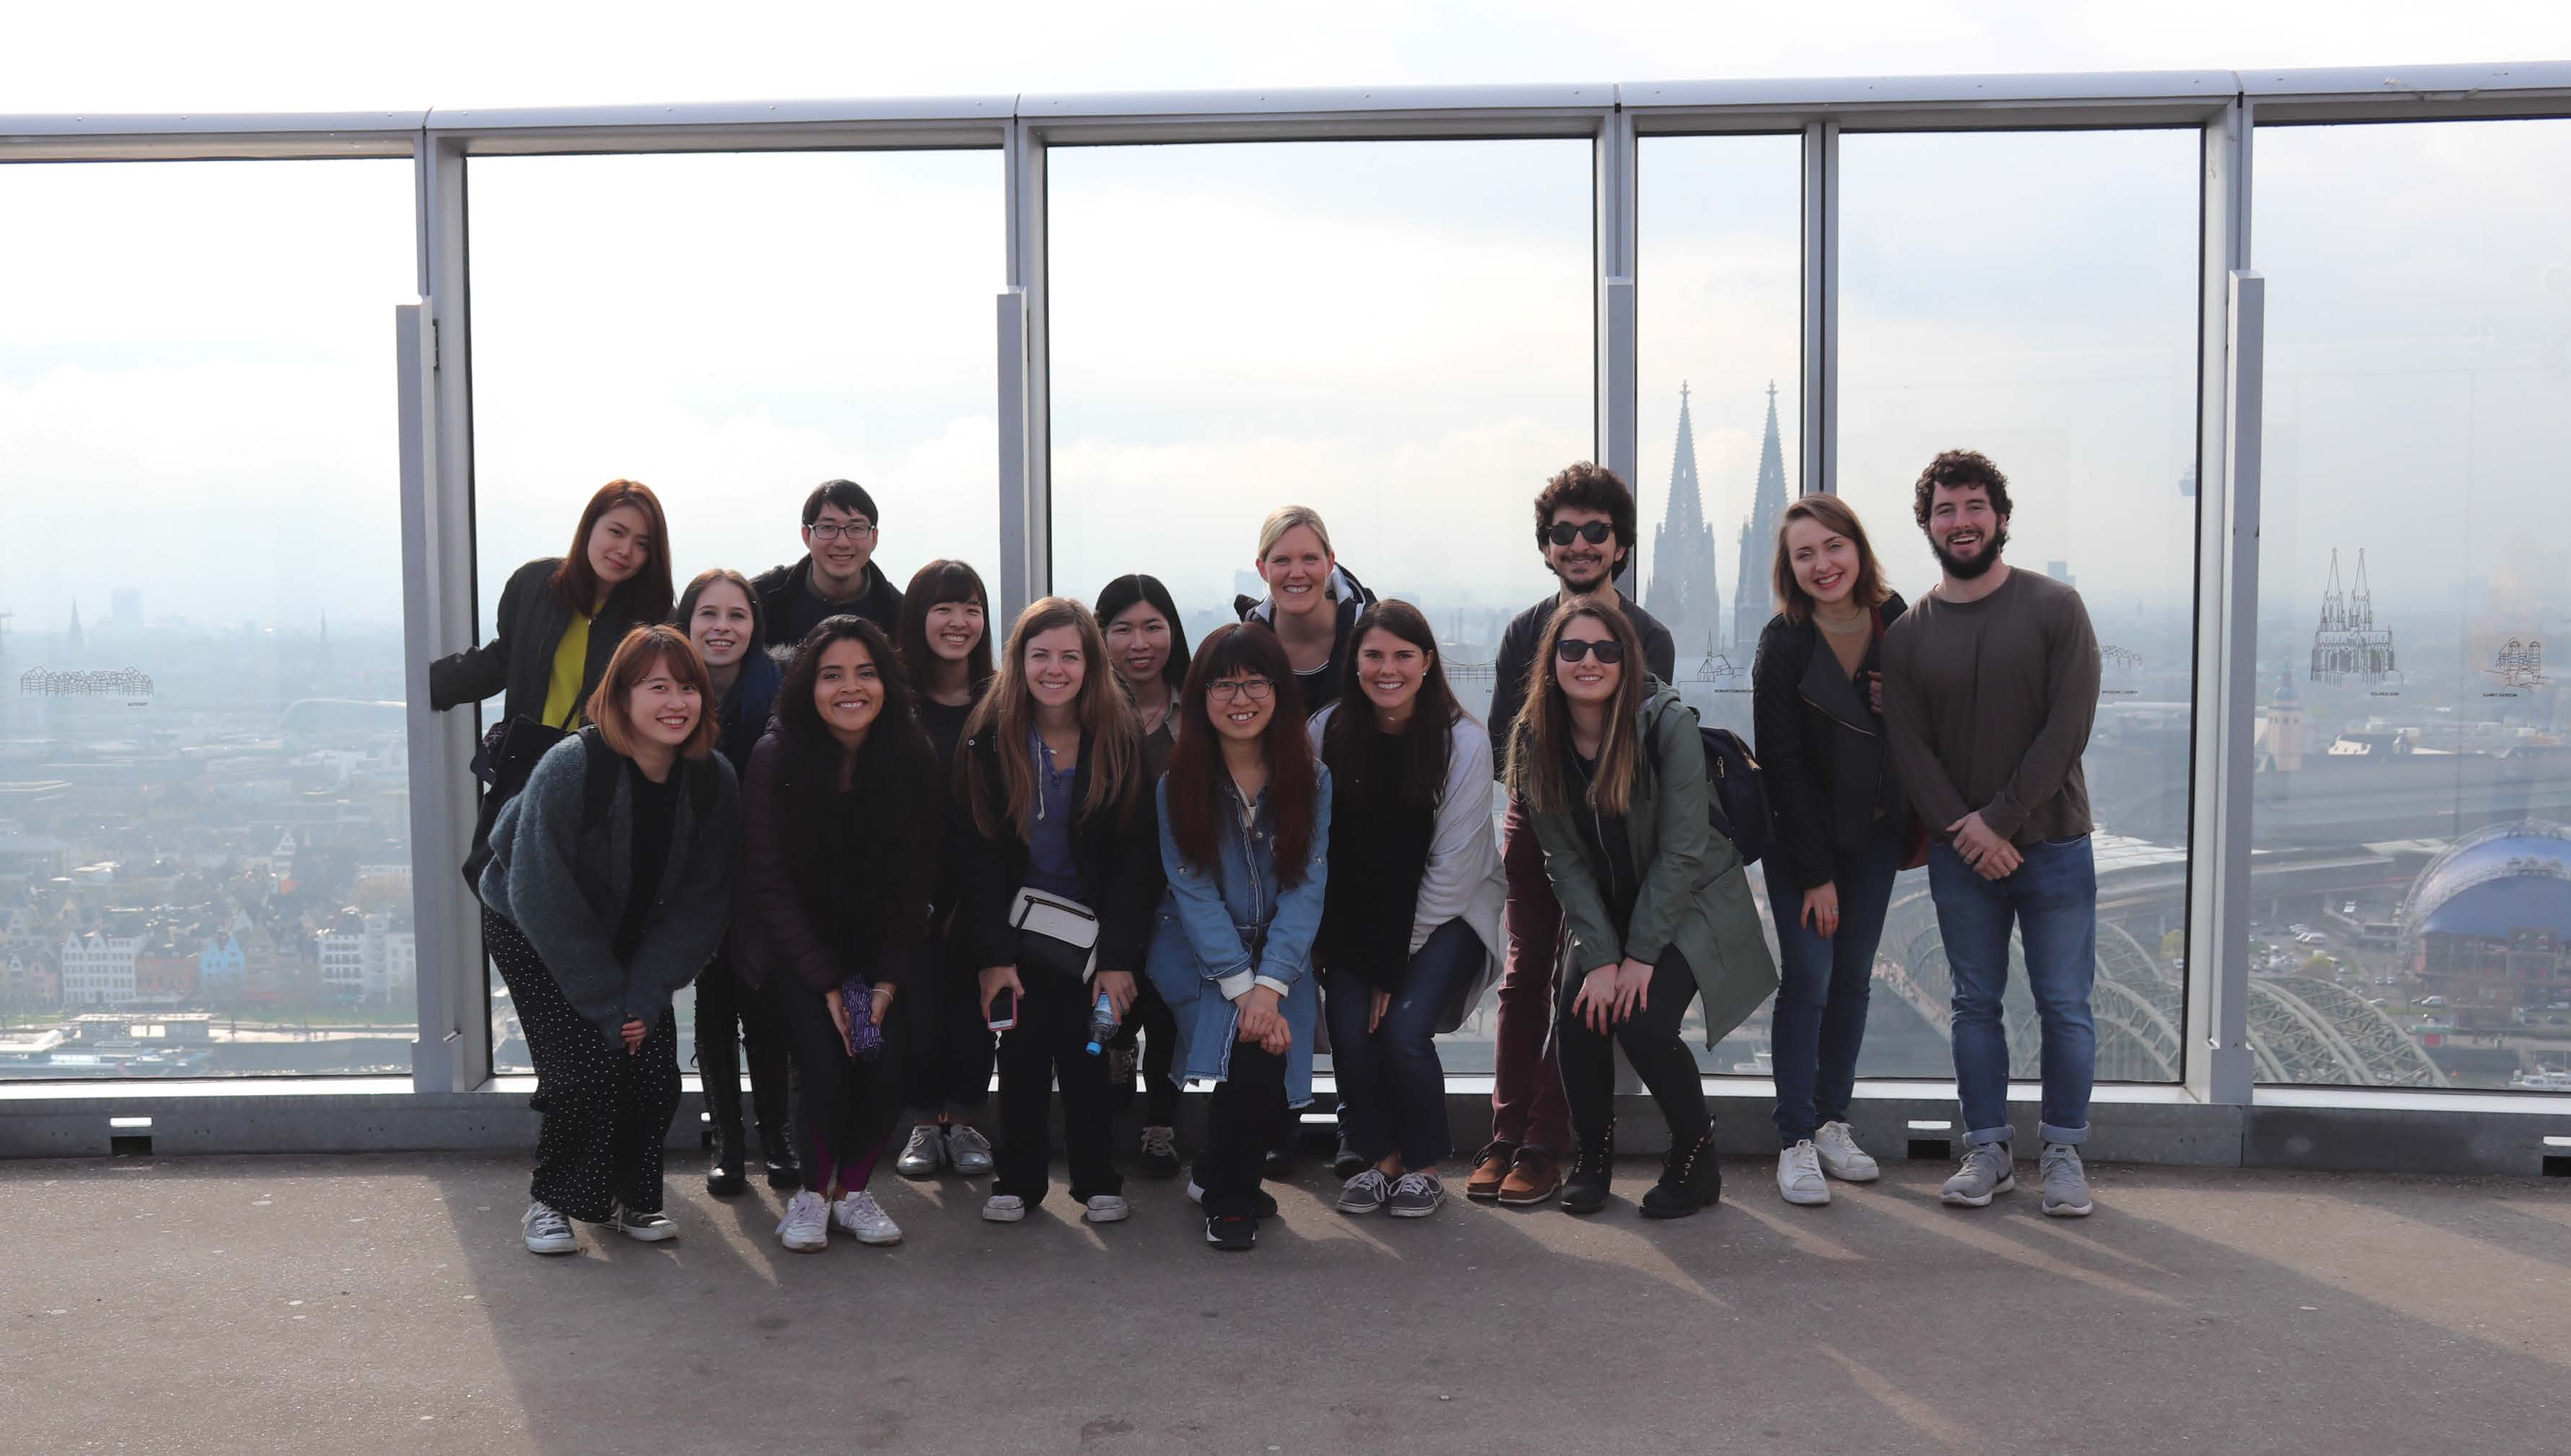 Group picture at the triangle tower in Cologne.